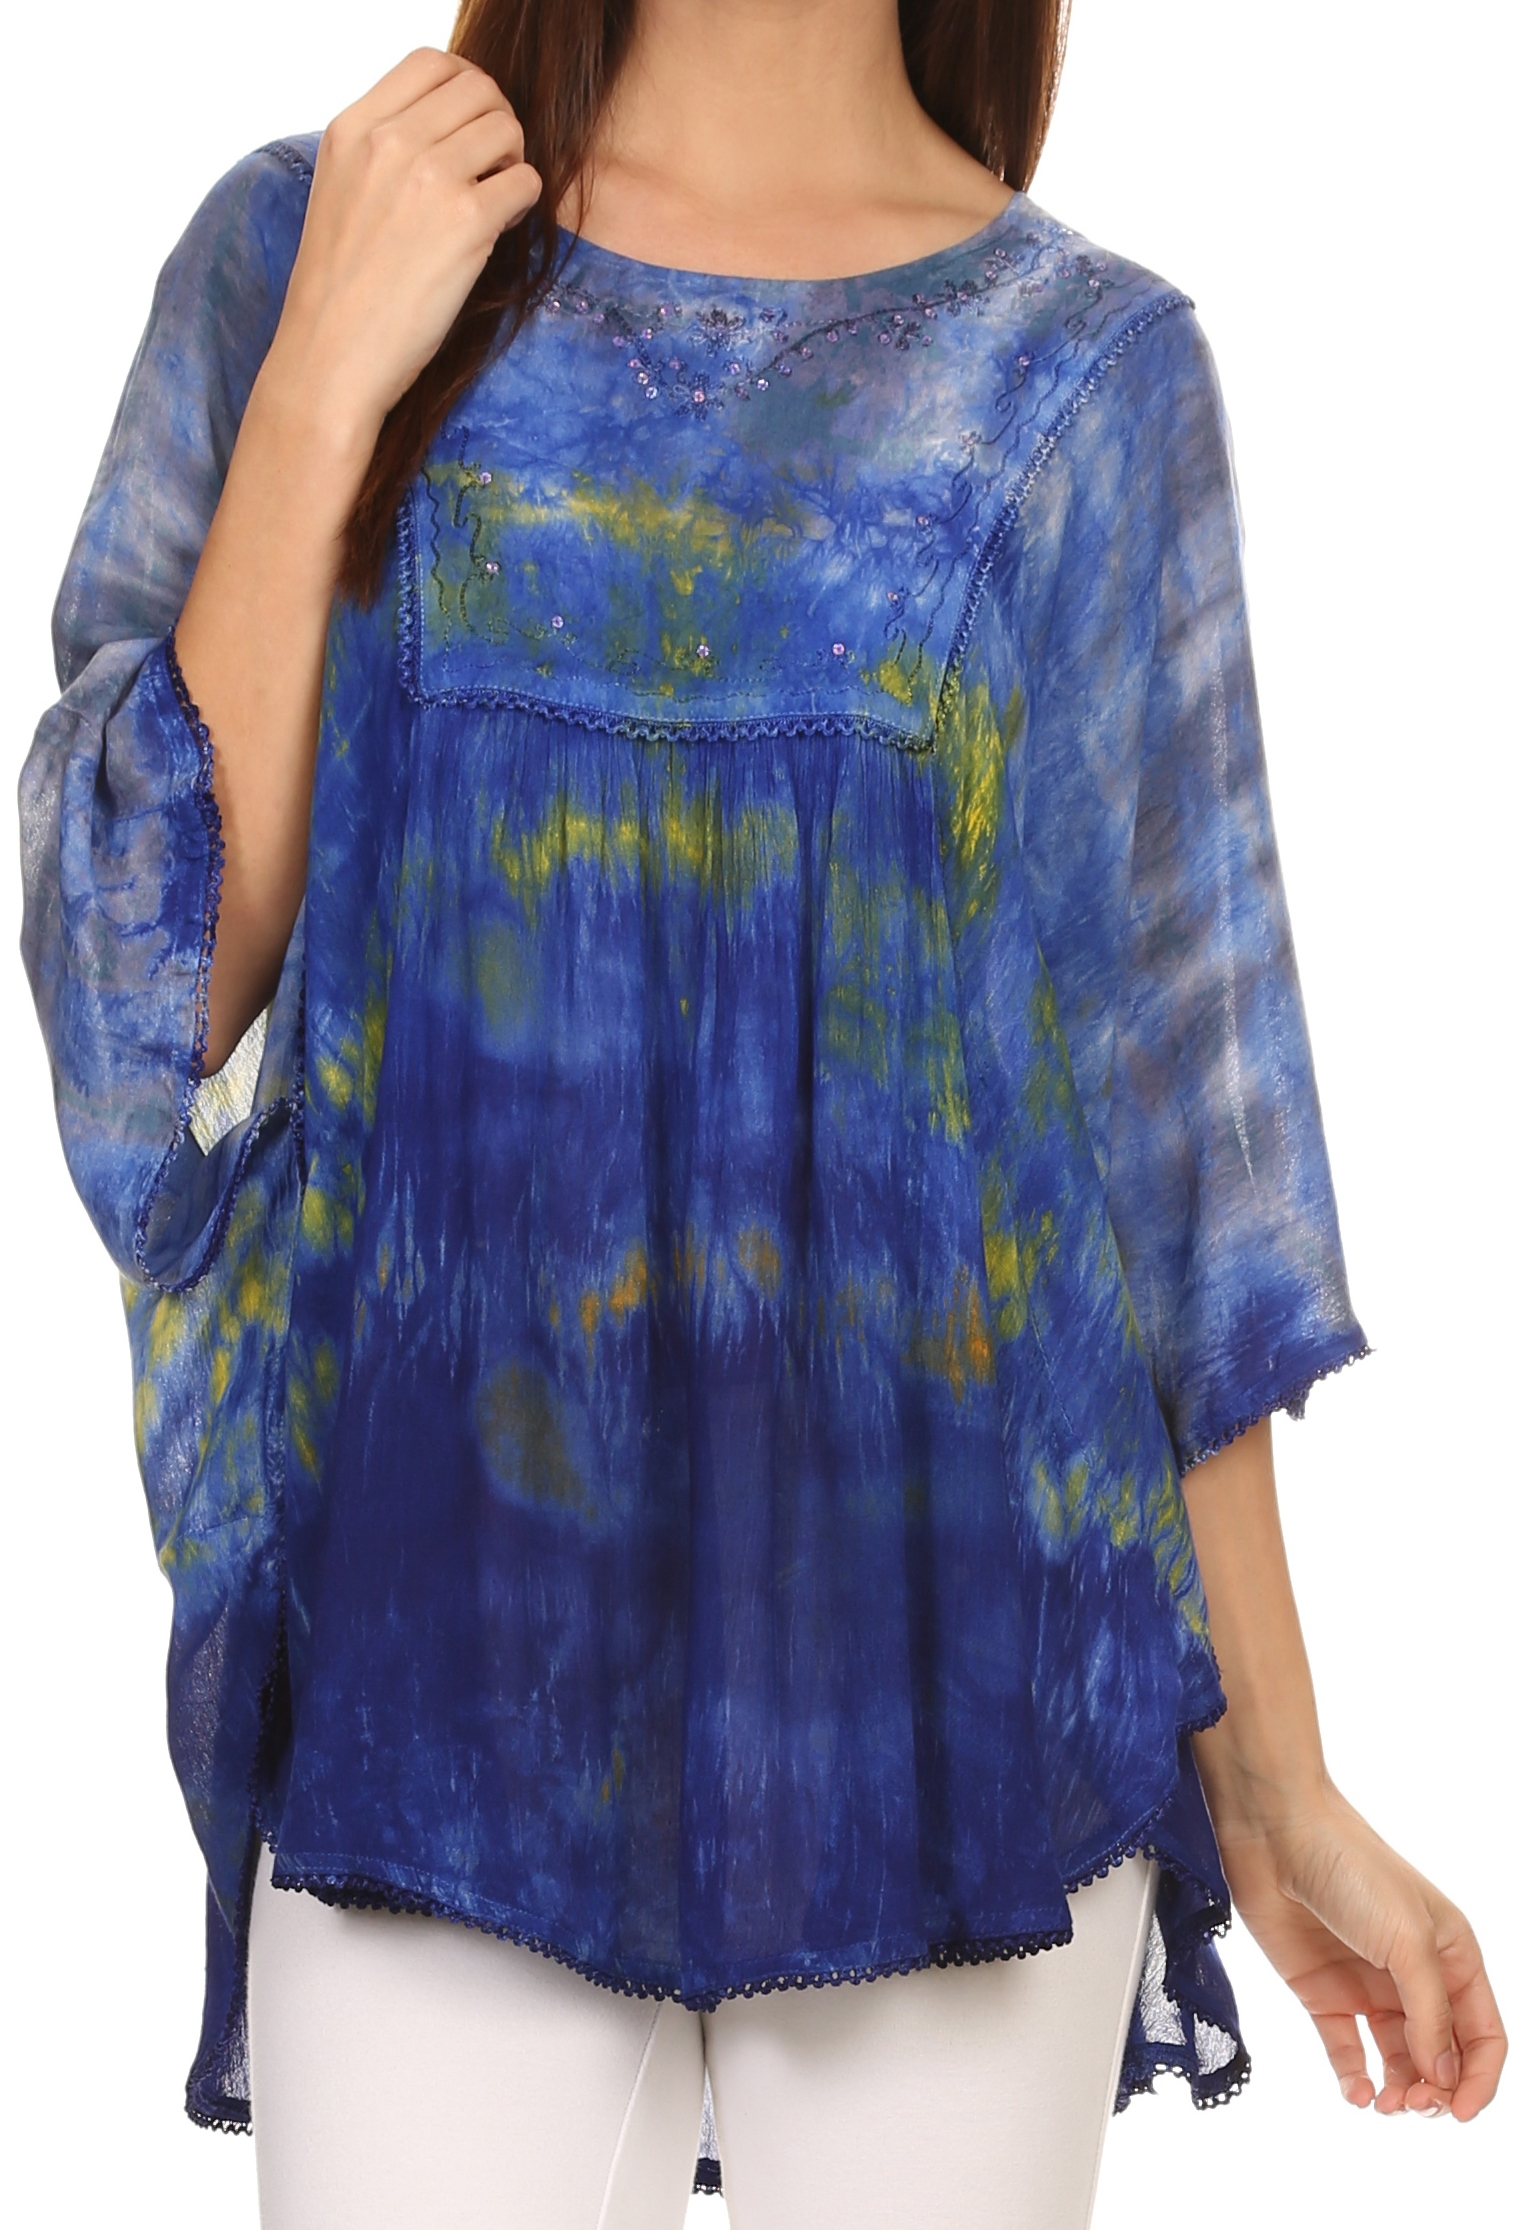 Sakkas Lepha Long Wide Multi Colored Tie Dye Sequin Embroidered Poncho Top Blouse Blue One Size Regular by